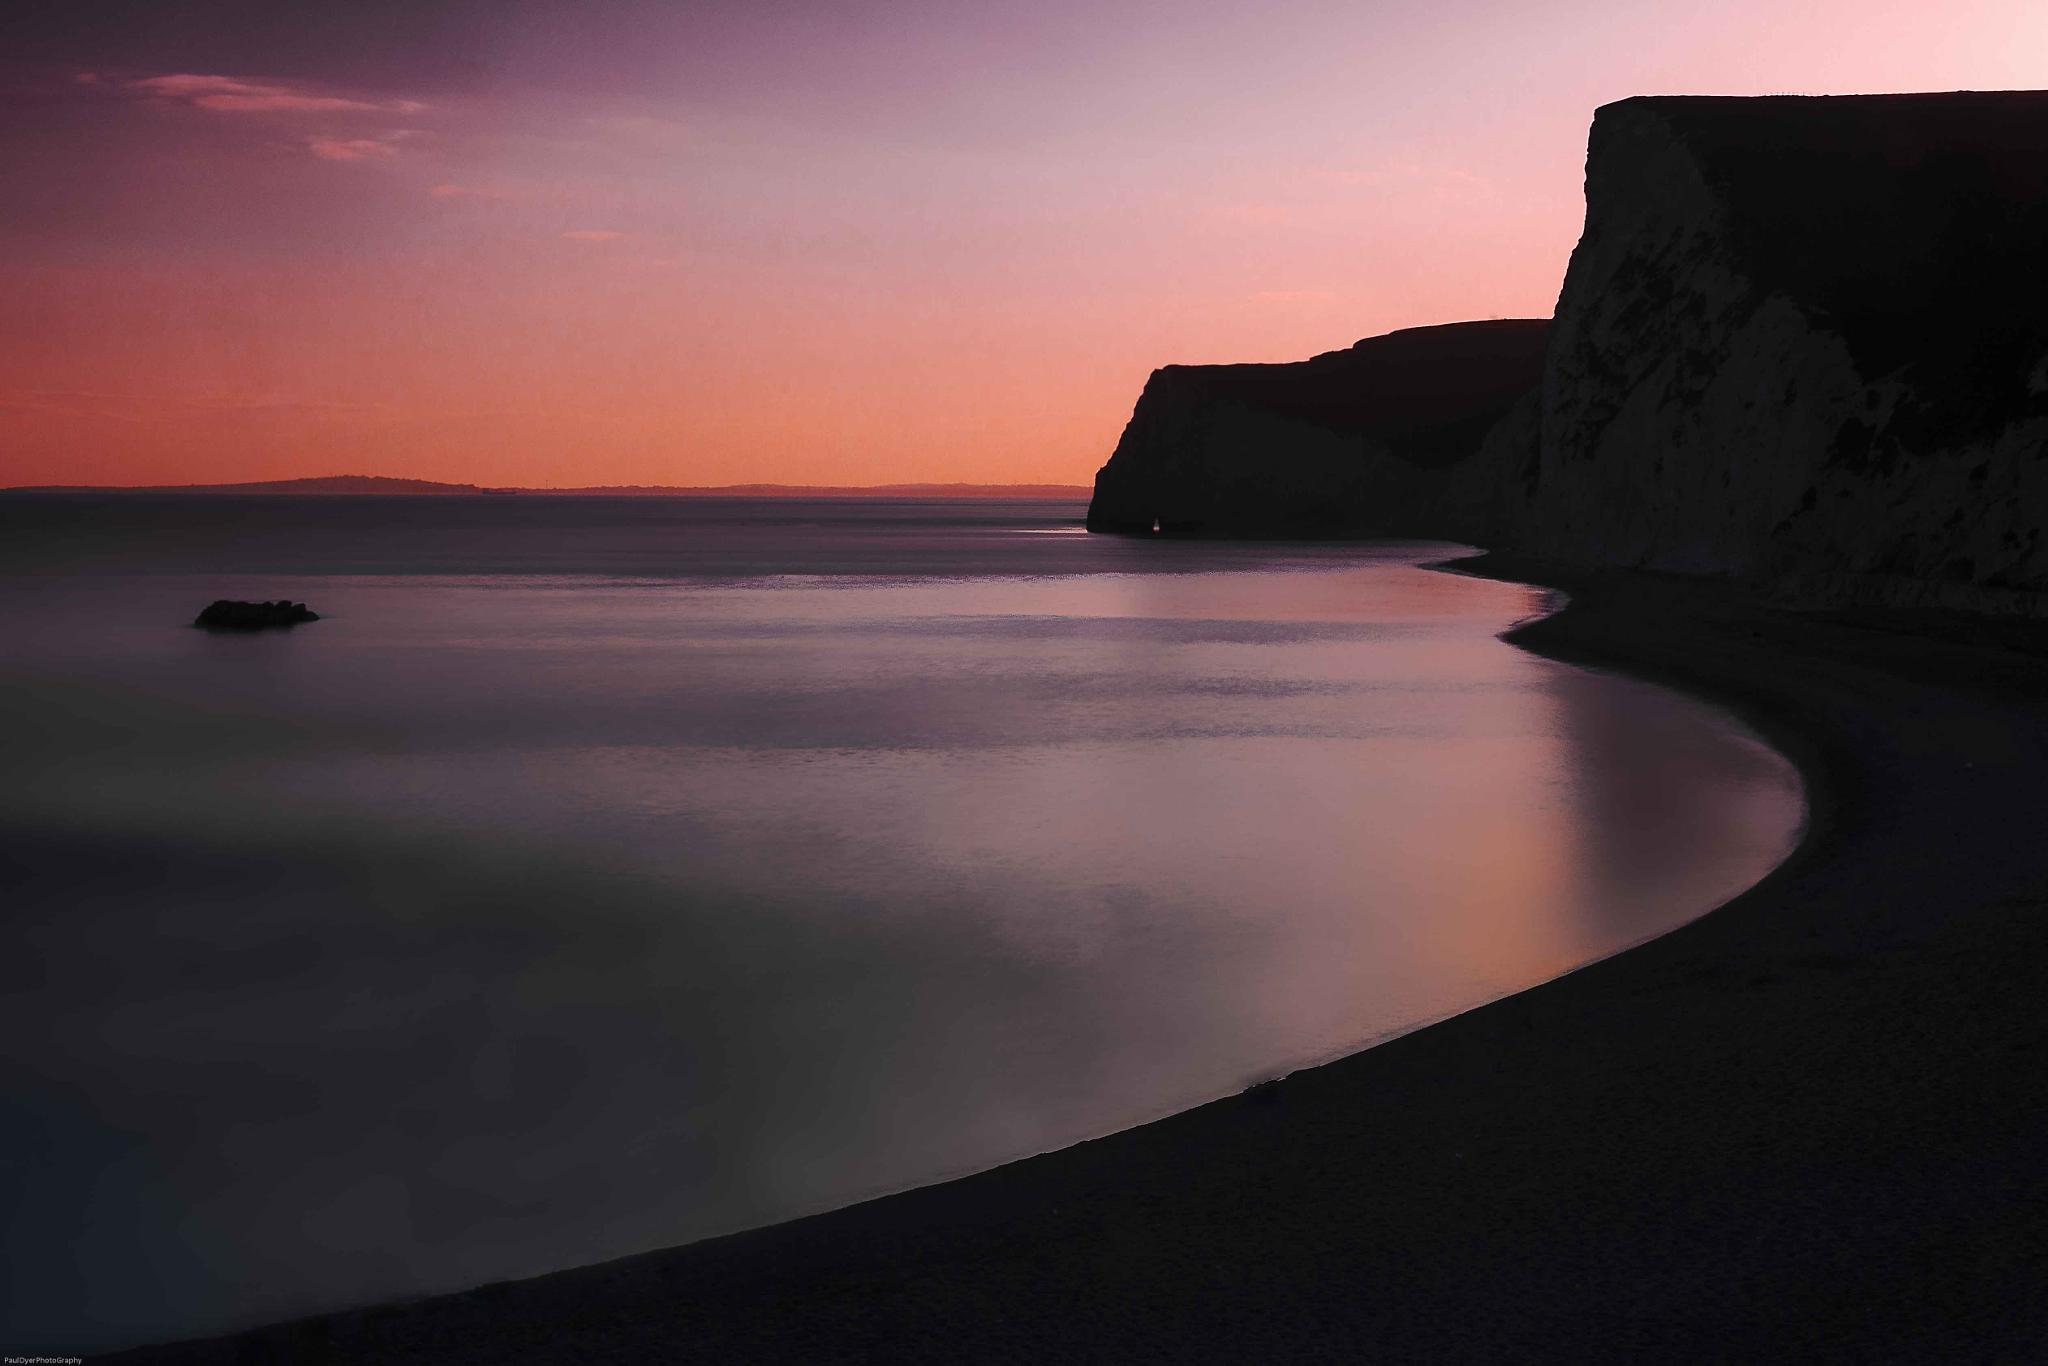 Sunset at the cove by Paul Dyer